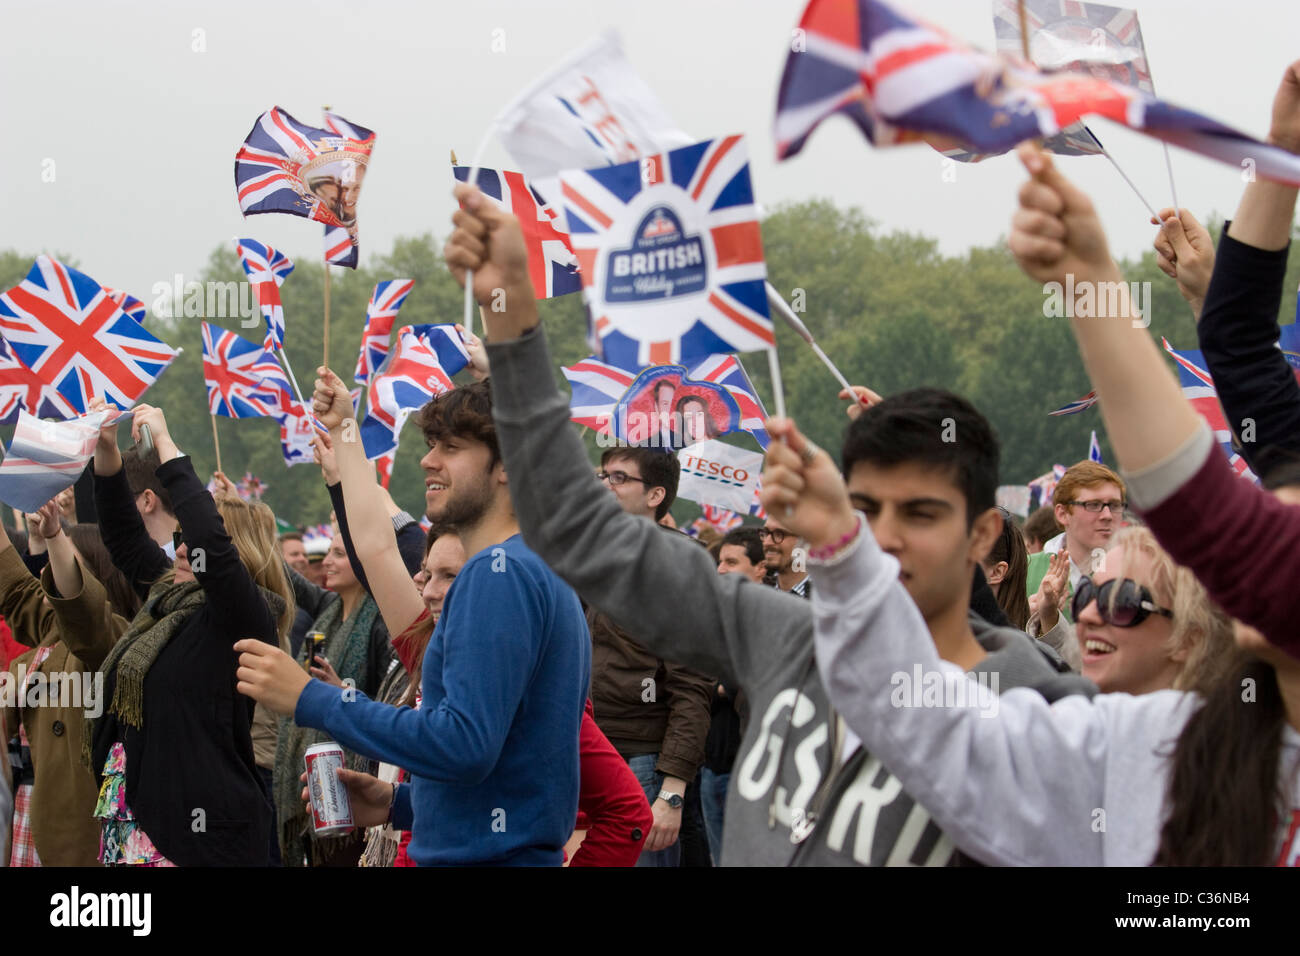 royal wedding hyde park reveller with union jack flags - Stock Image